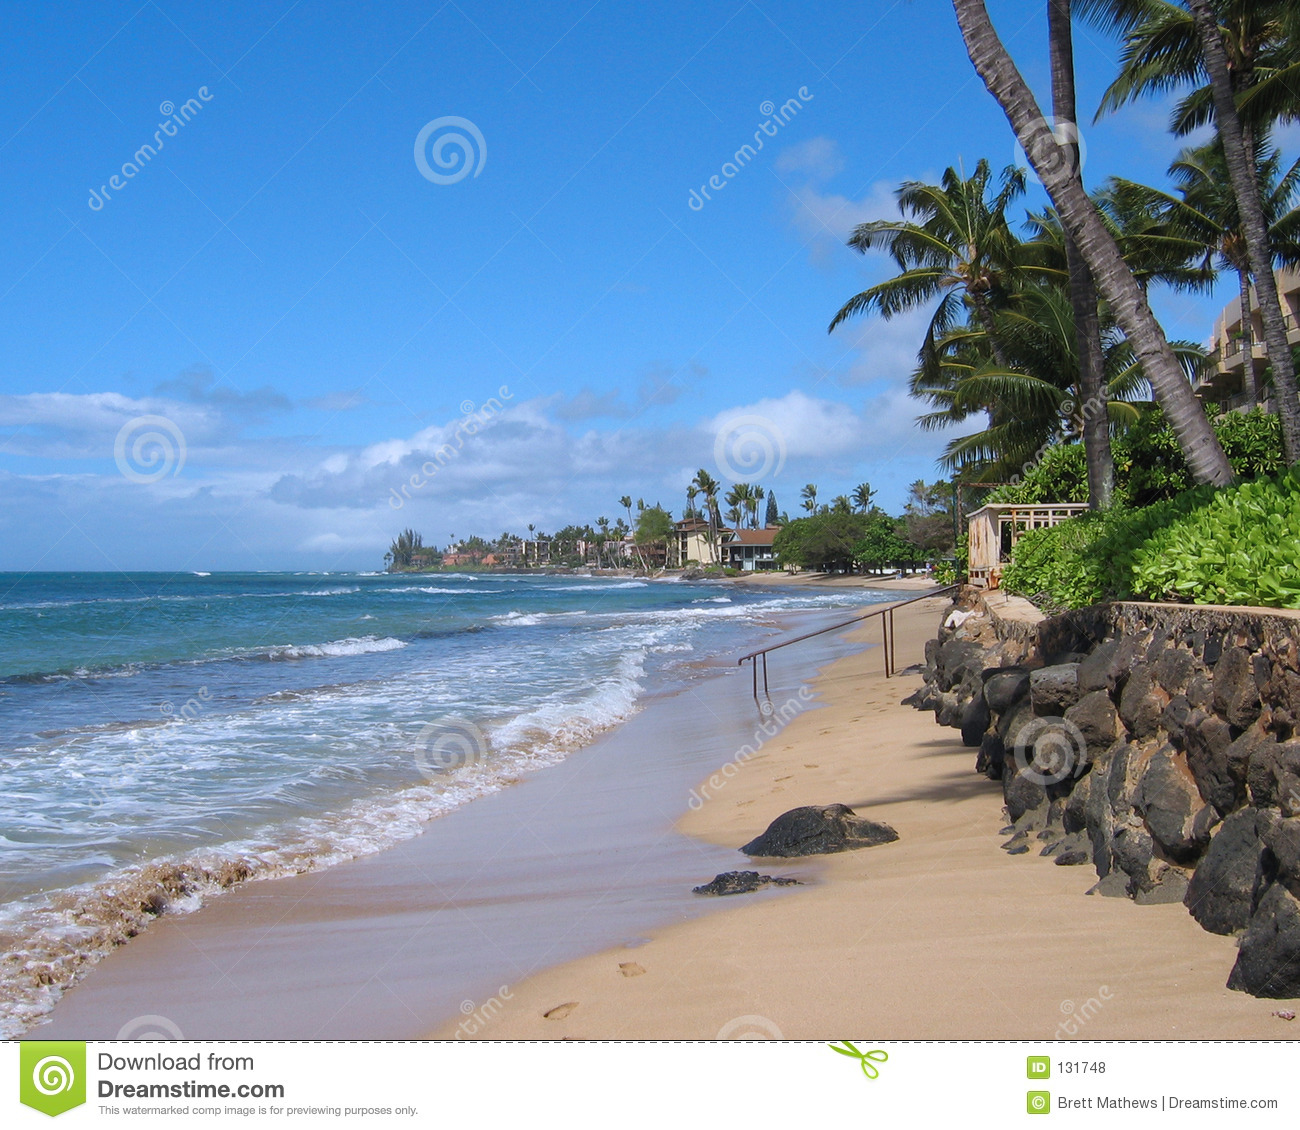 Maui Hawaii Beaches: Maui Beach Royalty Free Stock Photos